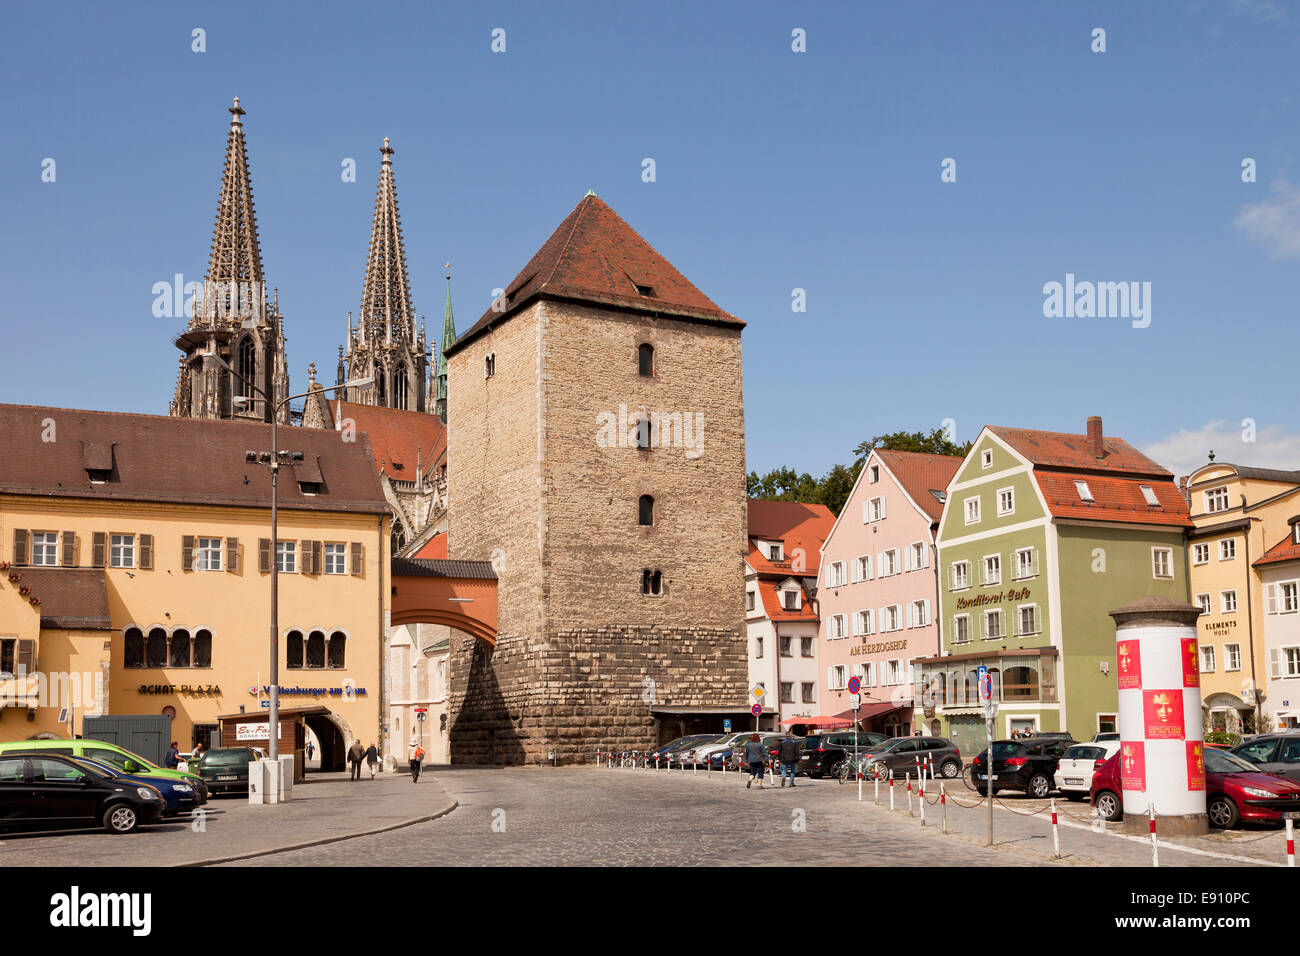 square Old corn market, Roman tower and the Regensburg Cathedral in Regensburg, Bavaria, Germany, Europe - Stock Image